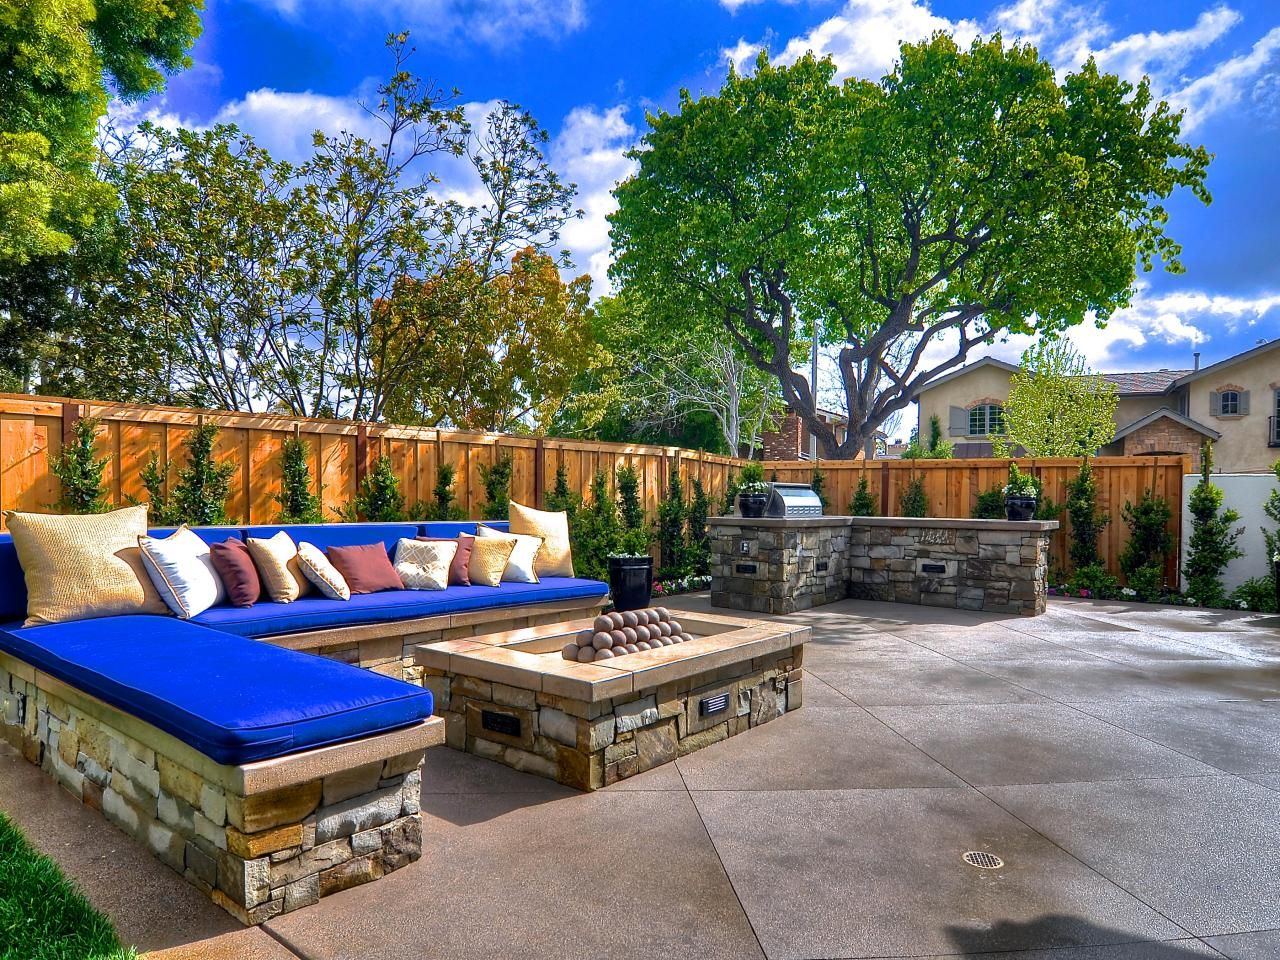 Backyard Landscaping Ideas With Fire Pit fire pit landscaping ideas amazing backyard landscape with Backyard How Big A Fire Pit